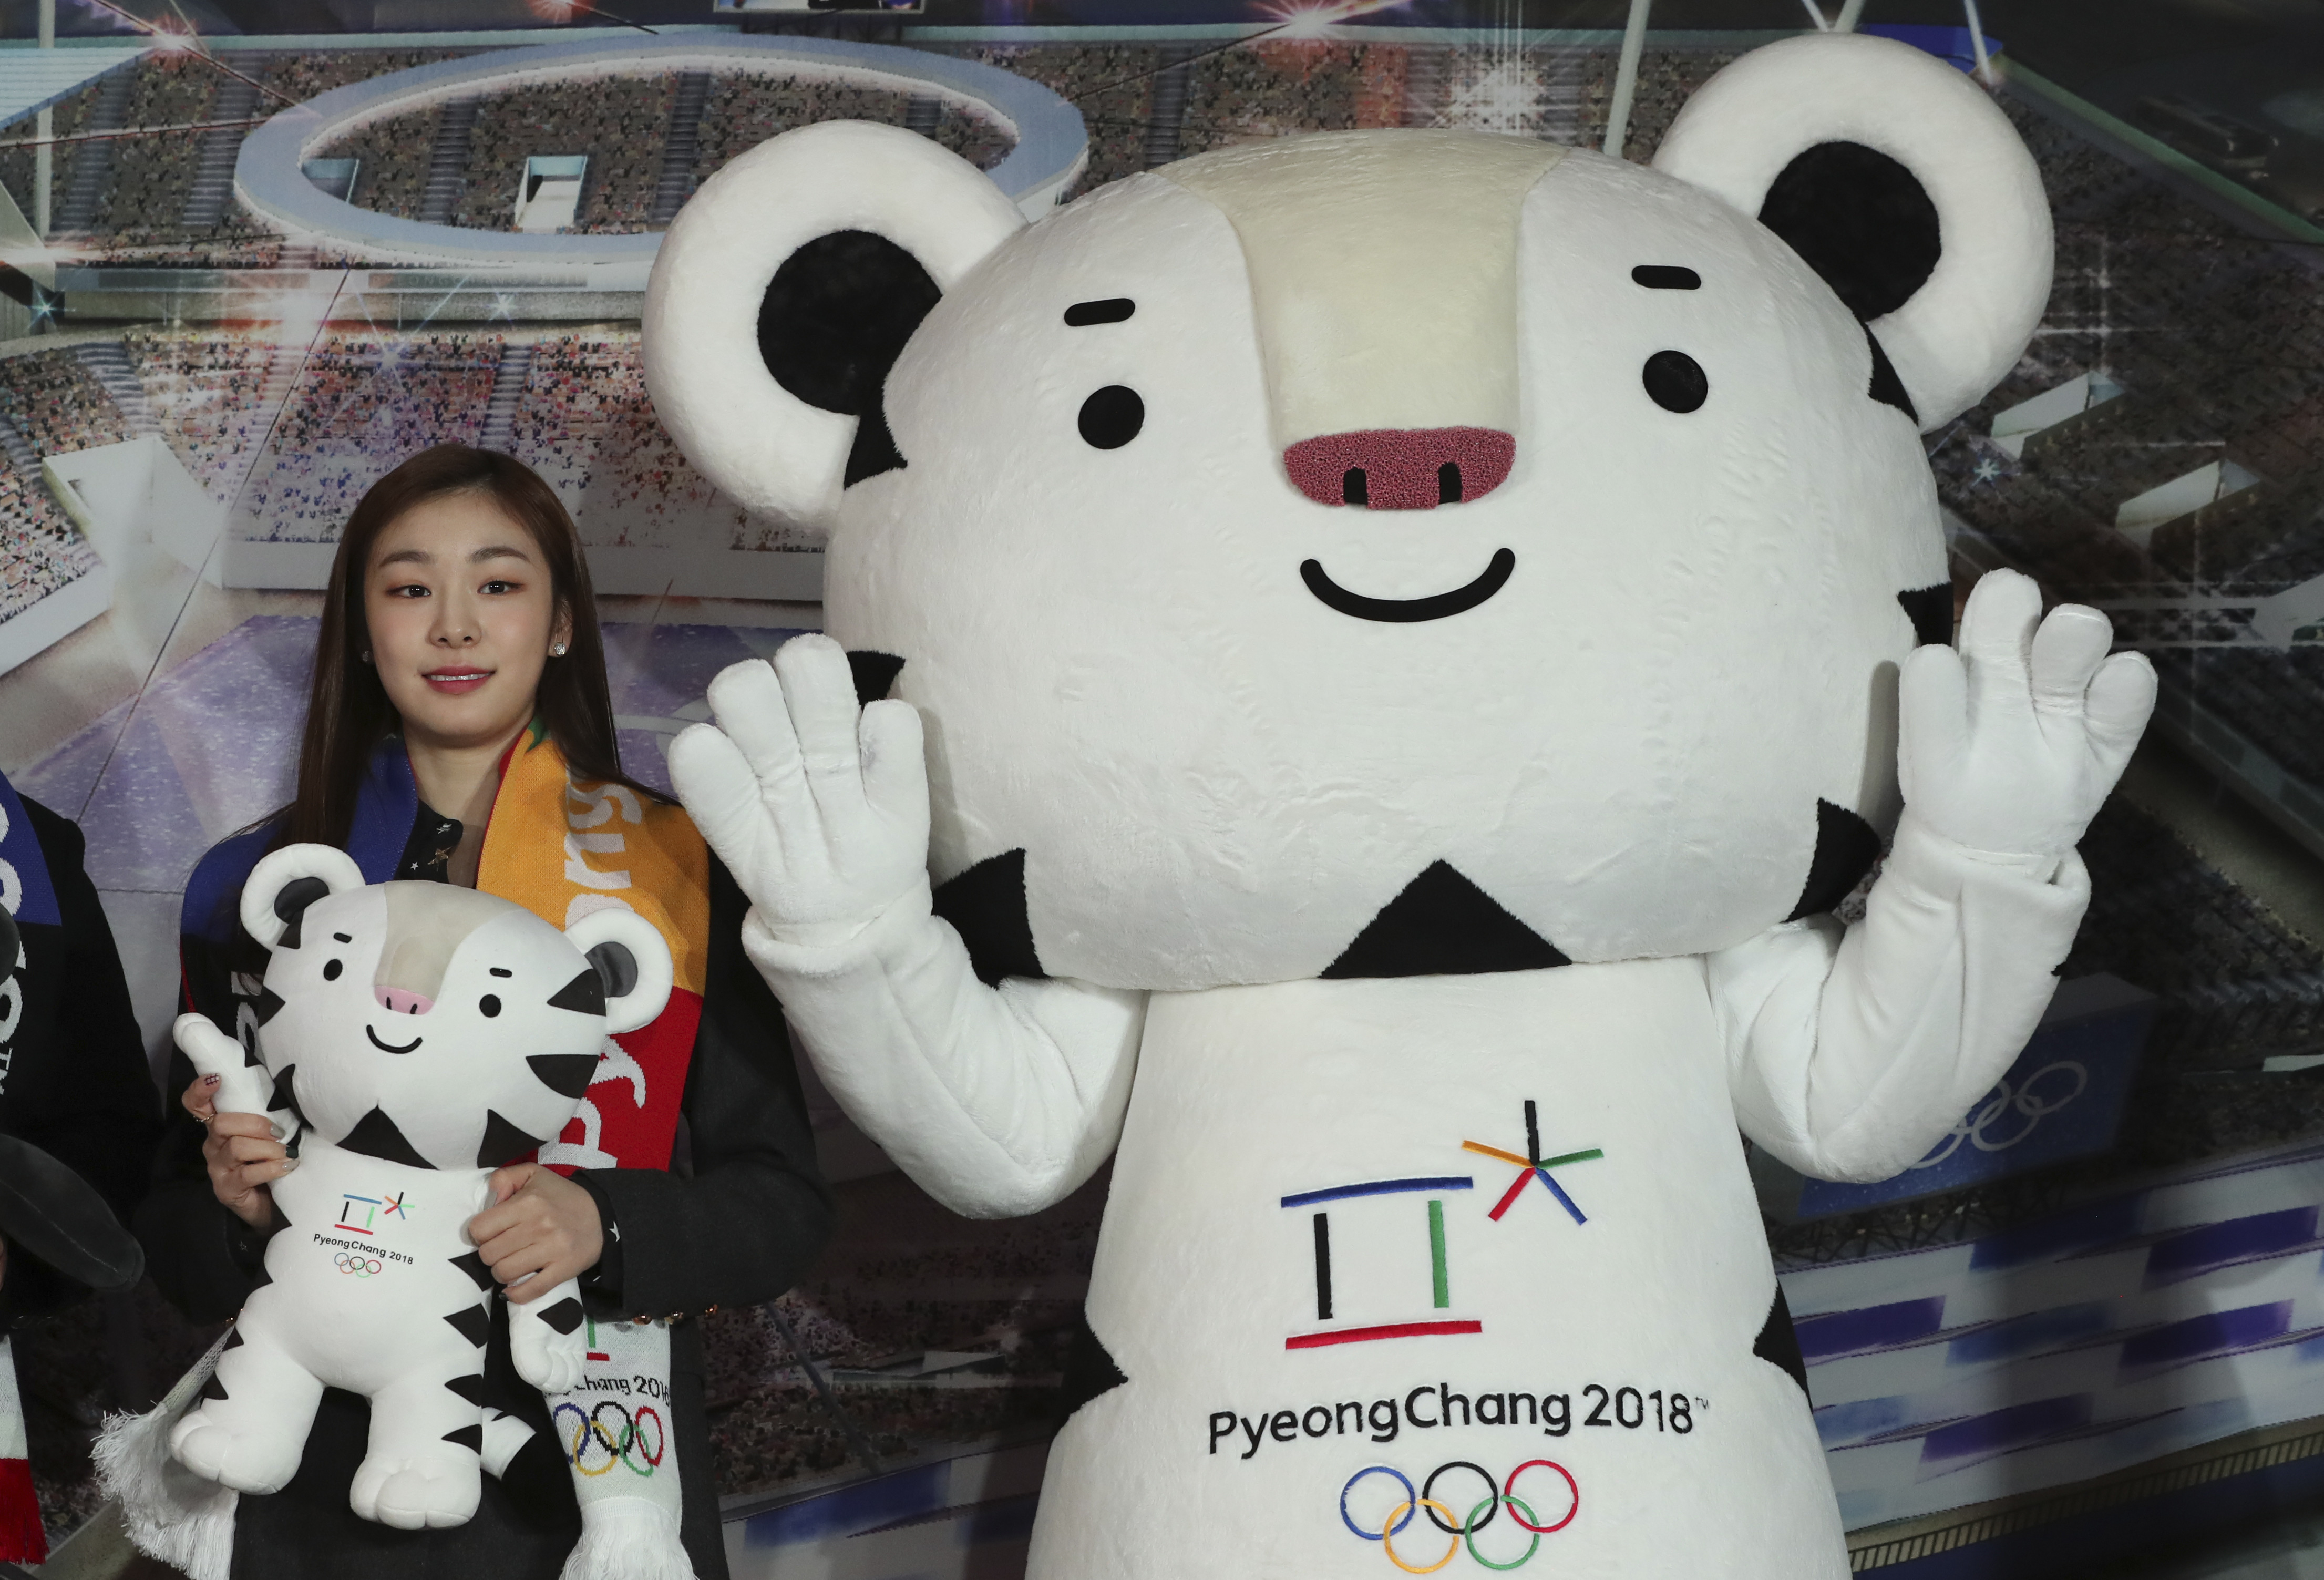 """FILE - In this Feb. 9, 2017, file photo, figure skating Olympics gold medalist Yuna Kim, an honorary ambassador for the 2018 Winter Olympics, poses with an official mascot of the 2018 Pyeongchang Olympic Winter Games, white tiger """"Soohorang,"""" at Gangneung"""